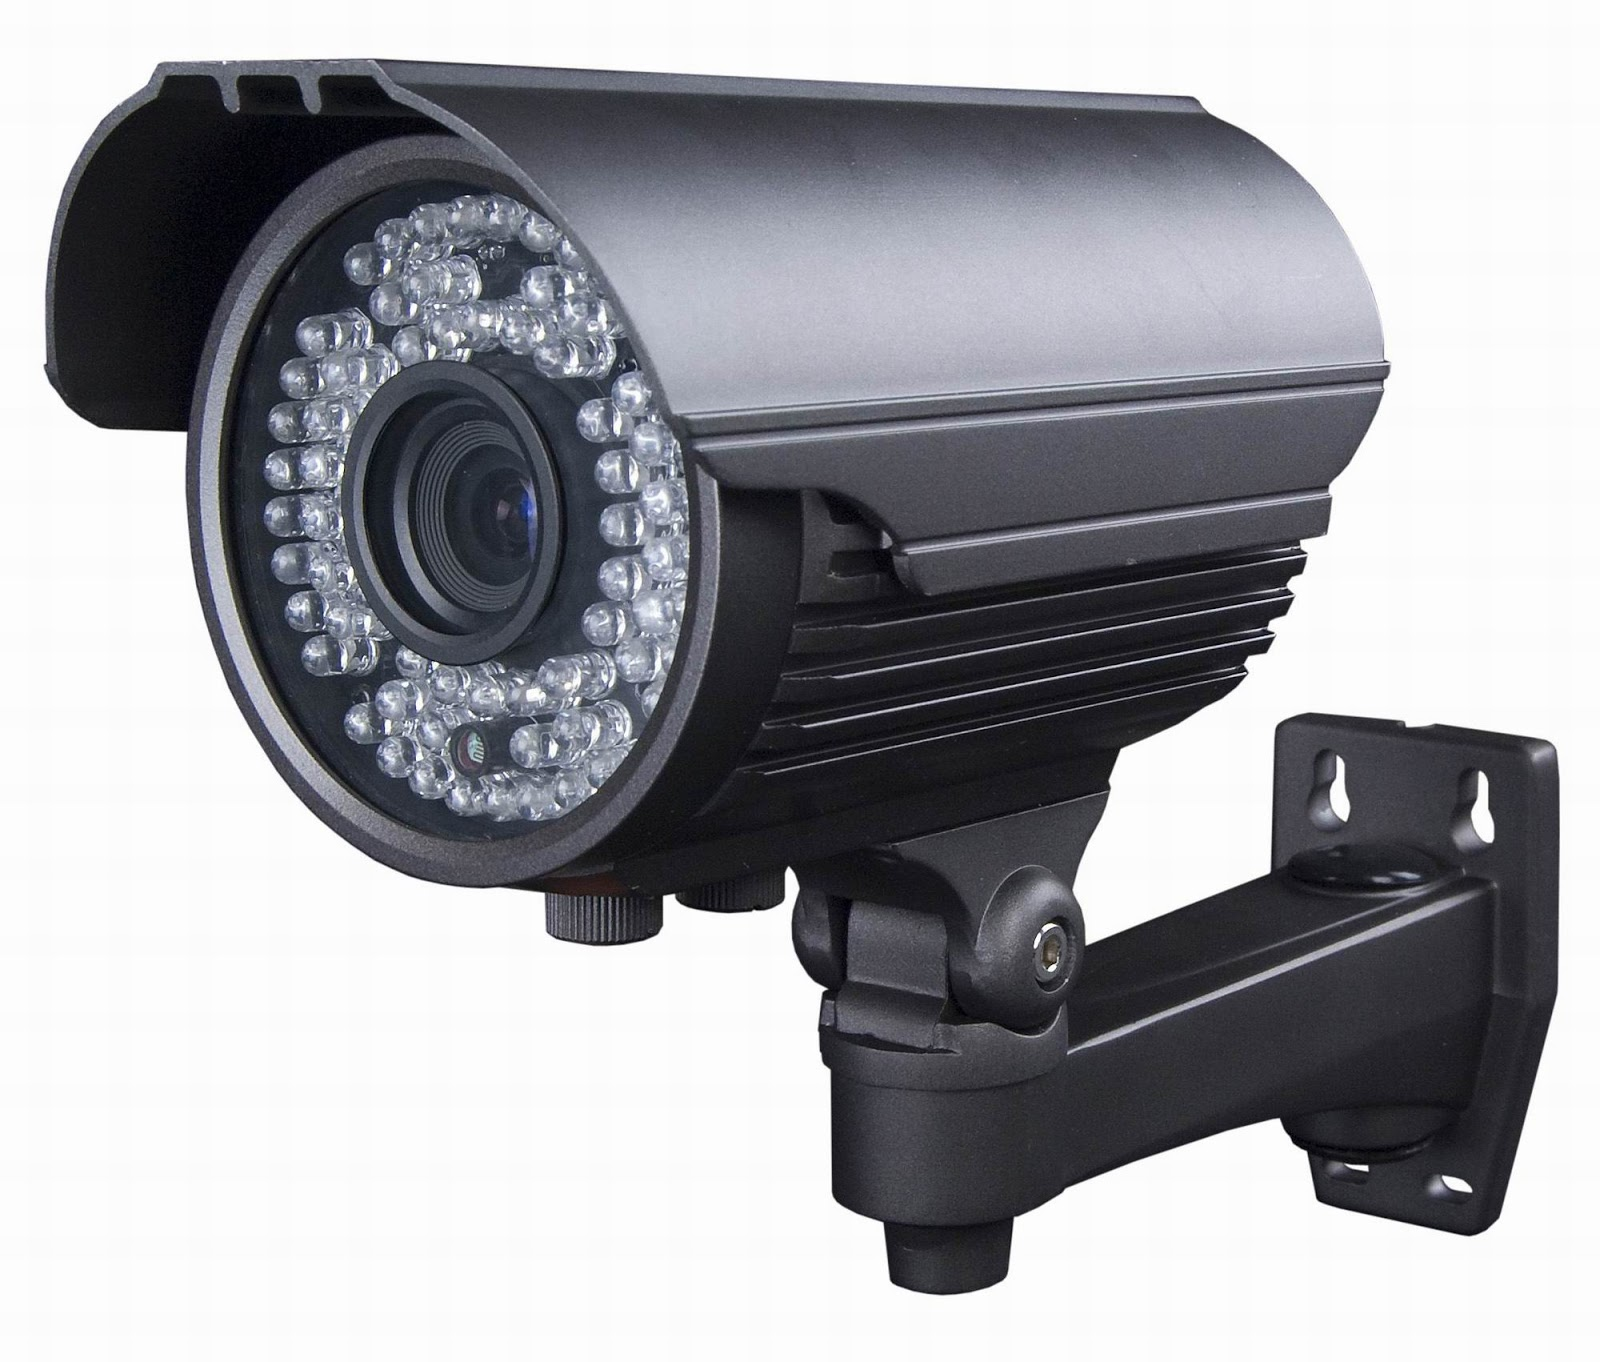 Wireless Battery Operated Surveillance Cameras For Home